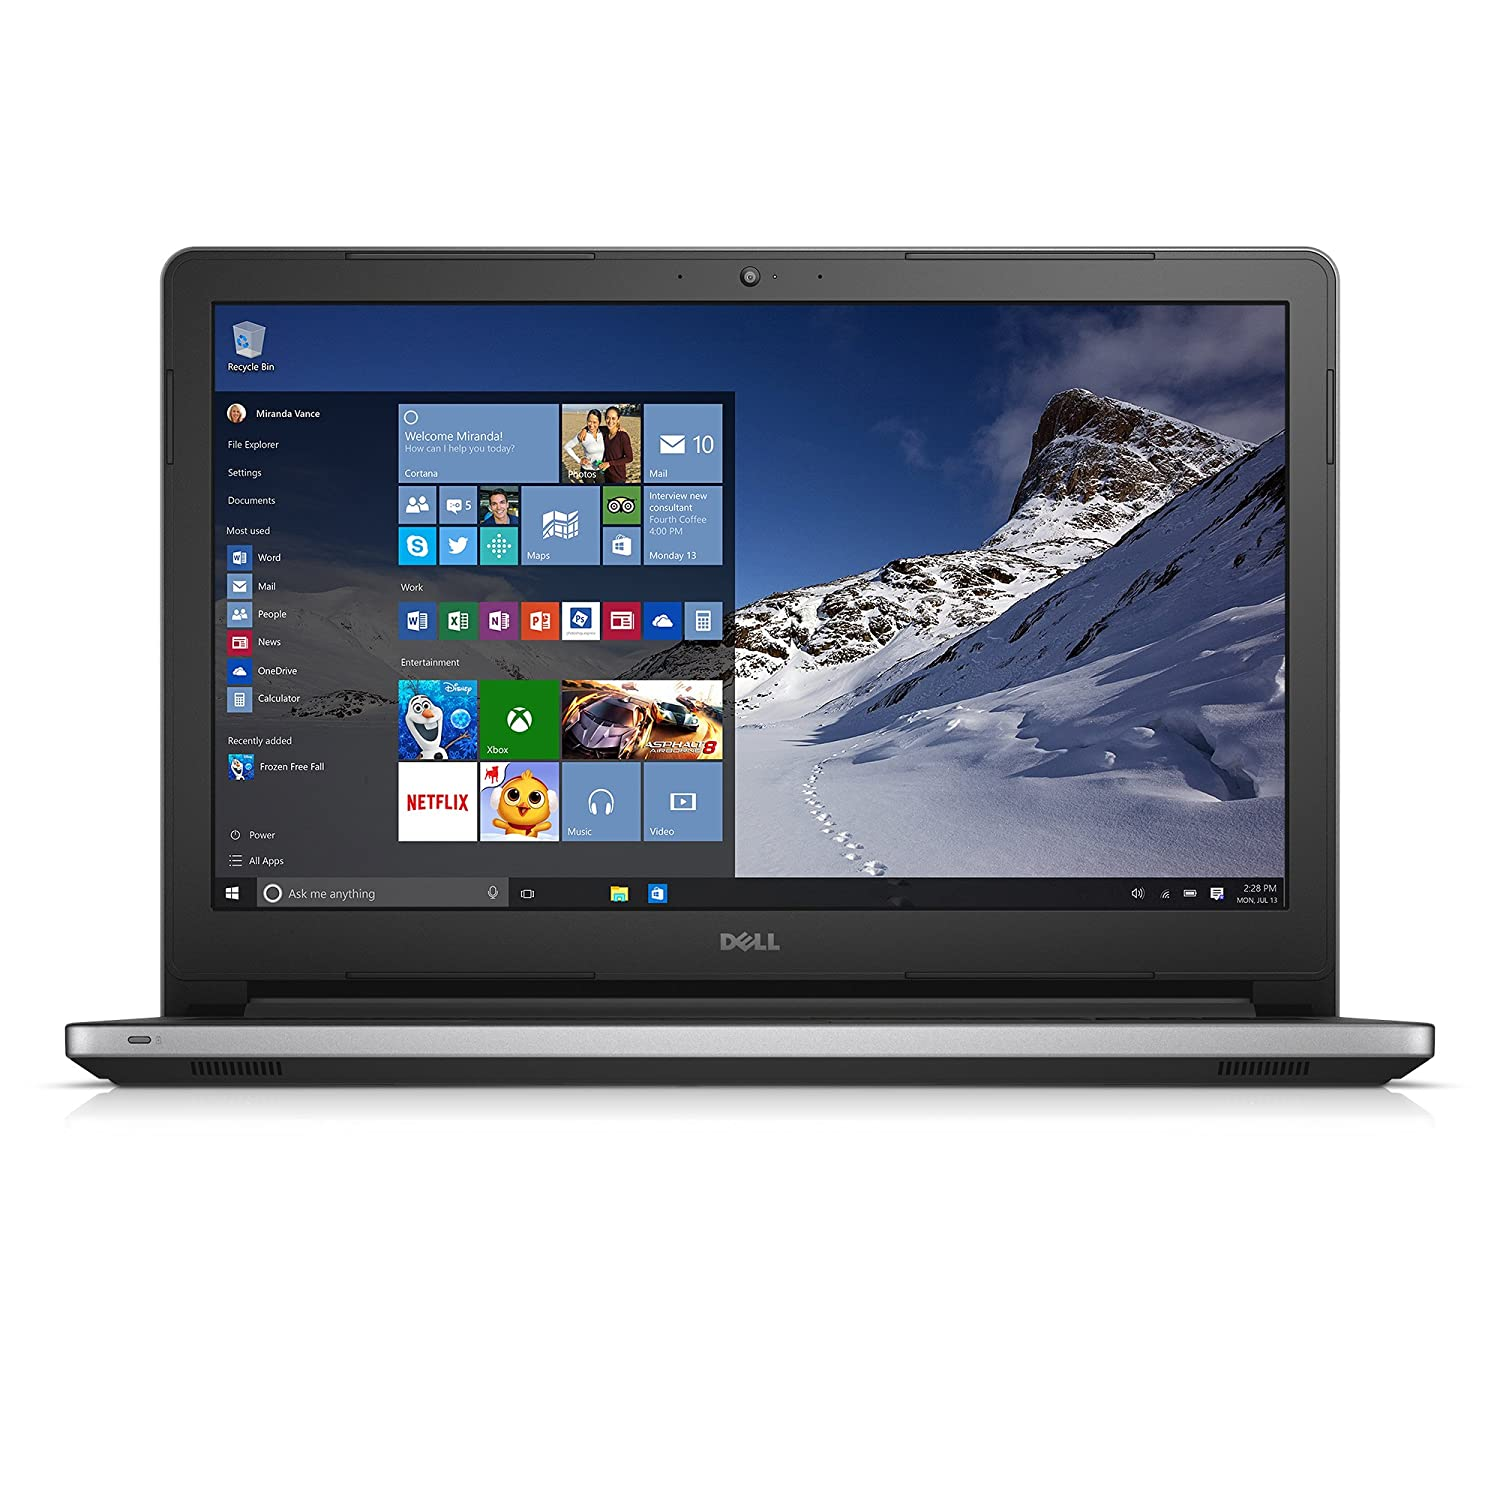 Dell Inspiron i5558-2859BLK 15.6 Inch Touchscreen Laptop (Intel Core i3, 8 GB RAM, 1 TB HDD)